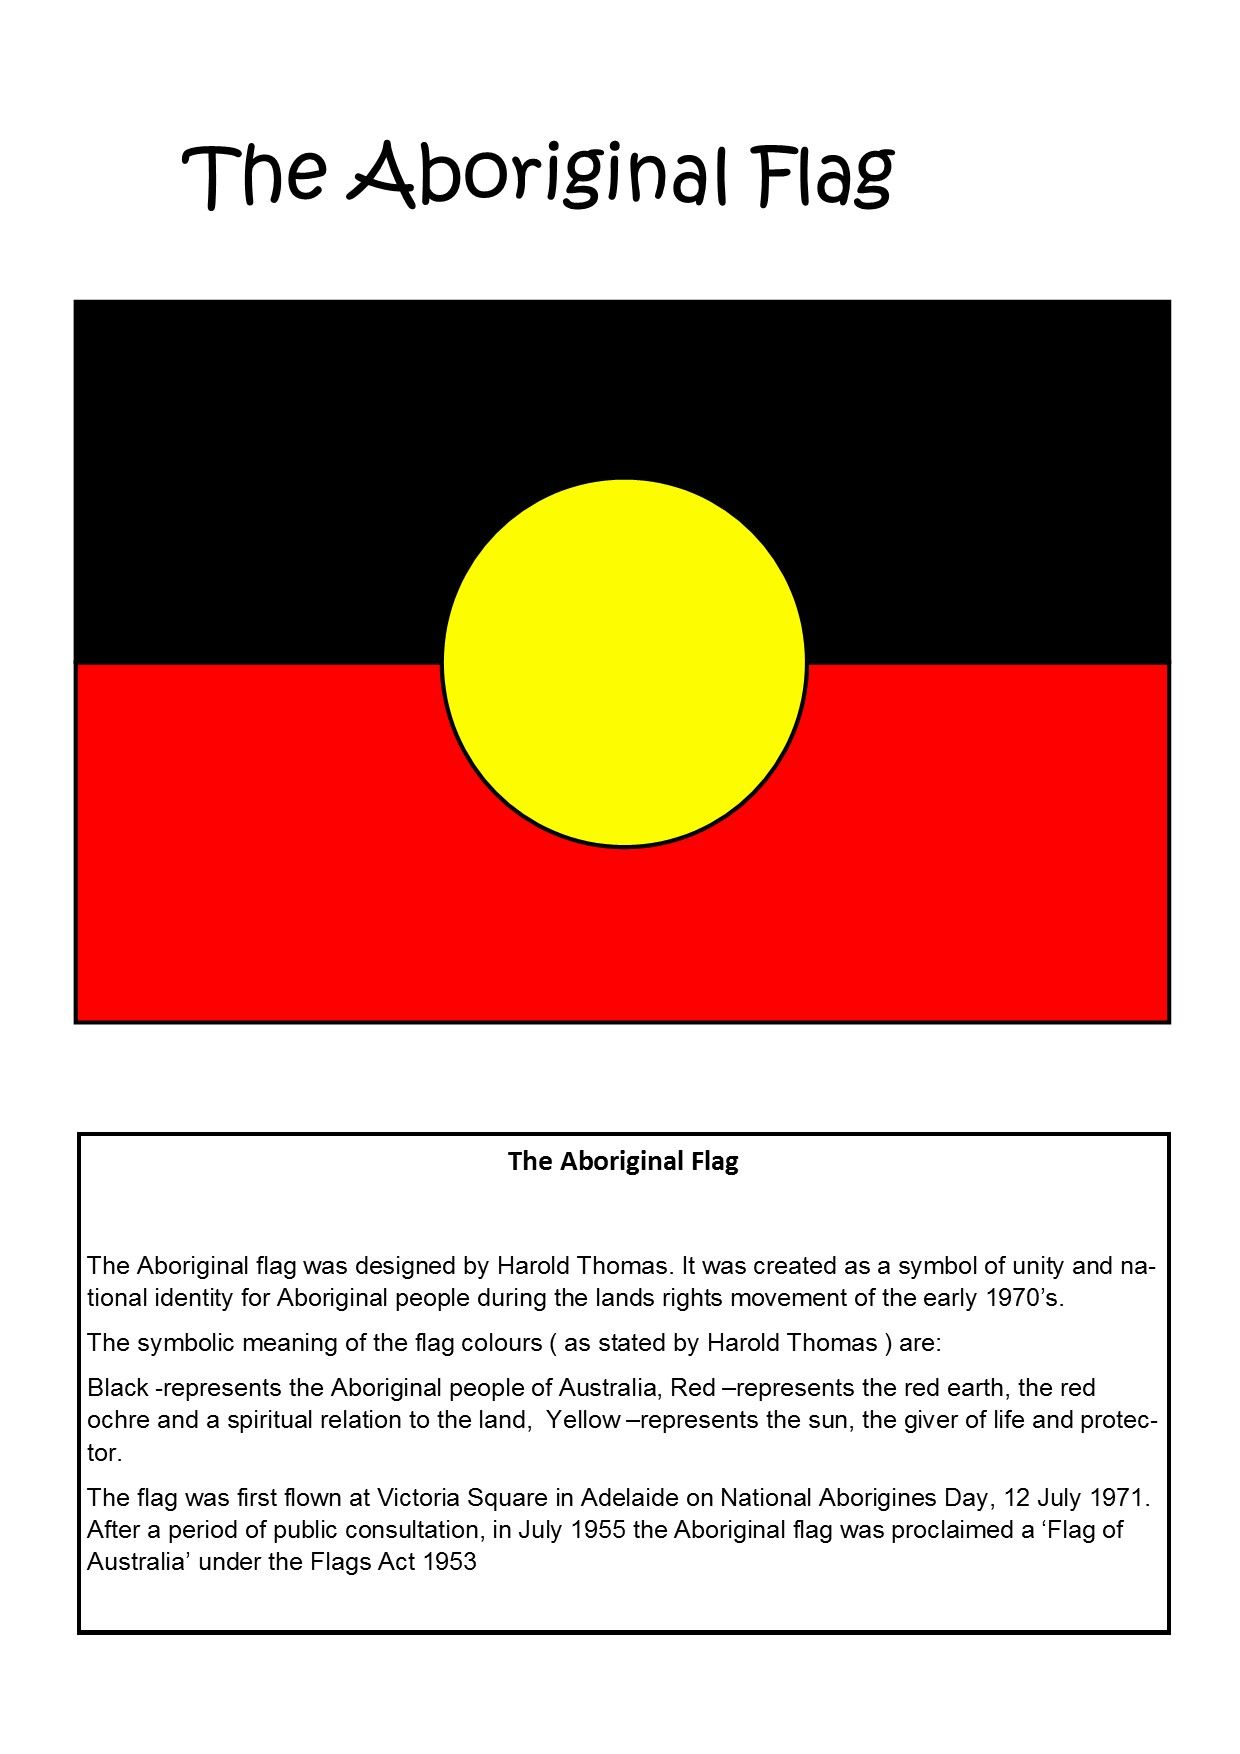 Australian Aboriginal Flag Teaching Resource